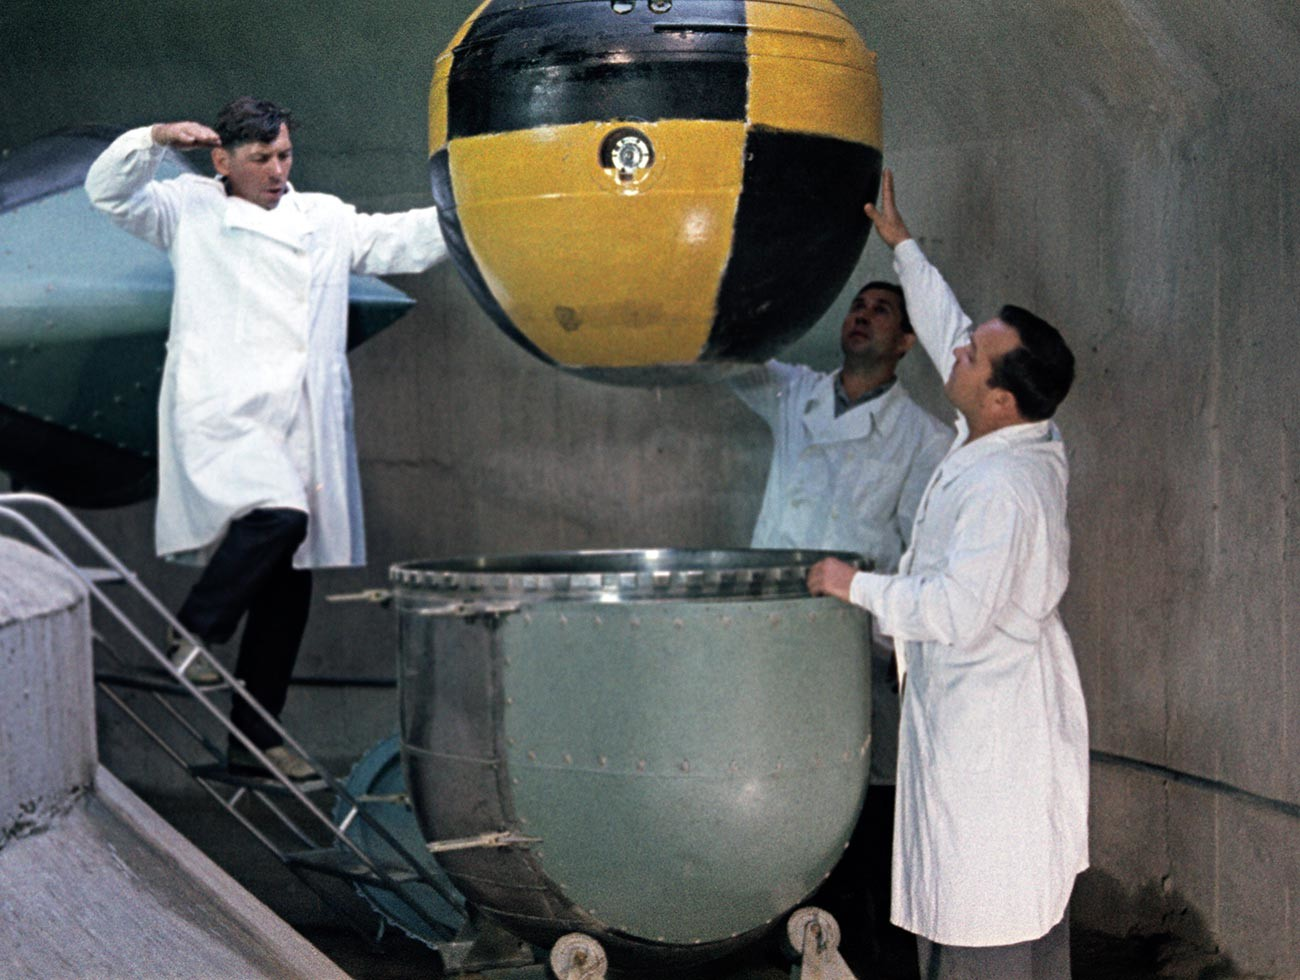 Researchers preparing for the test.